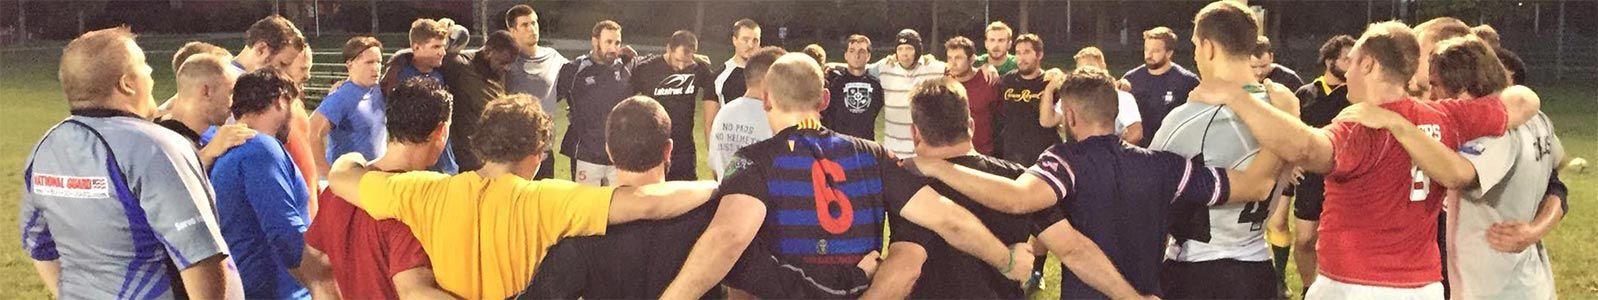 Join us for a rugby practice in Milwaukee most Tuesdays and Thursdays